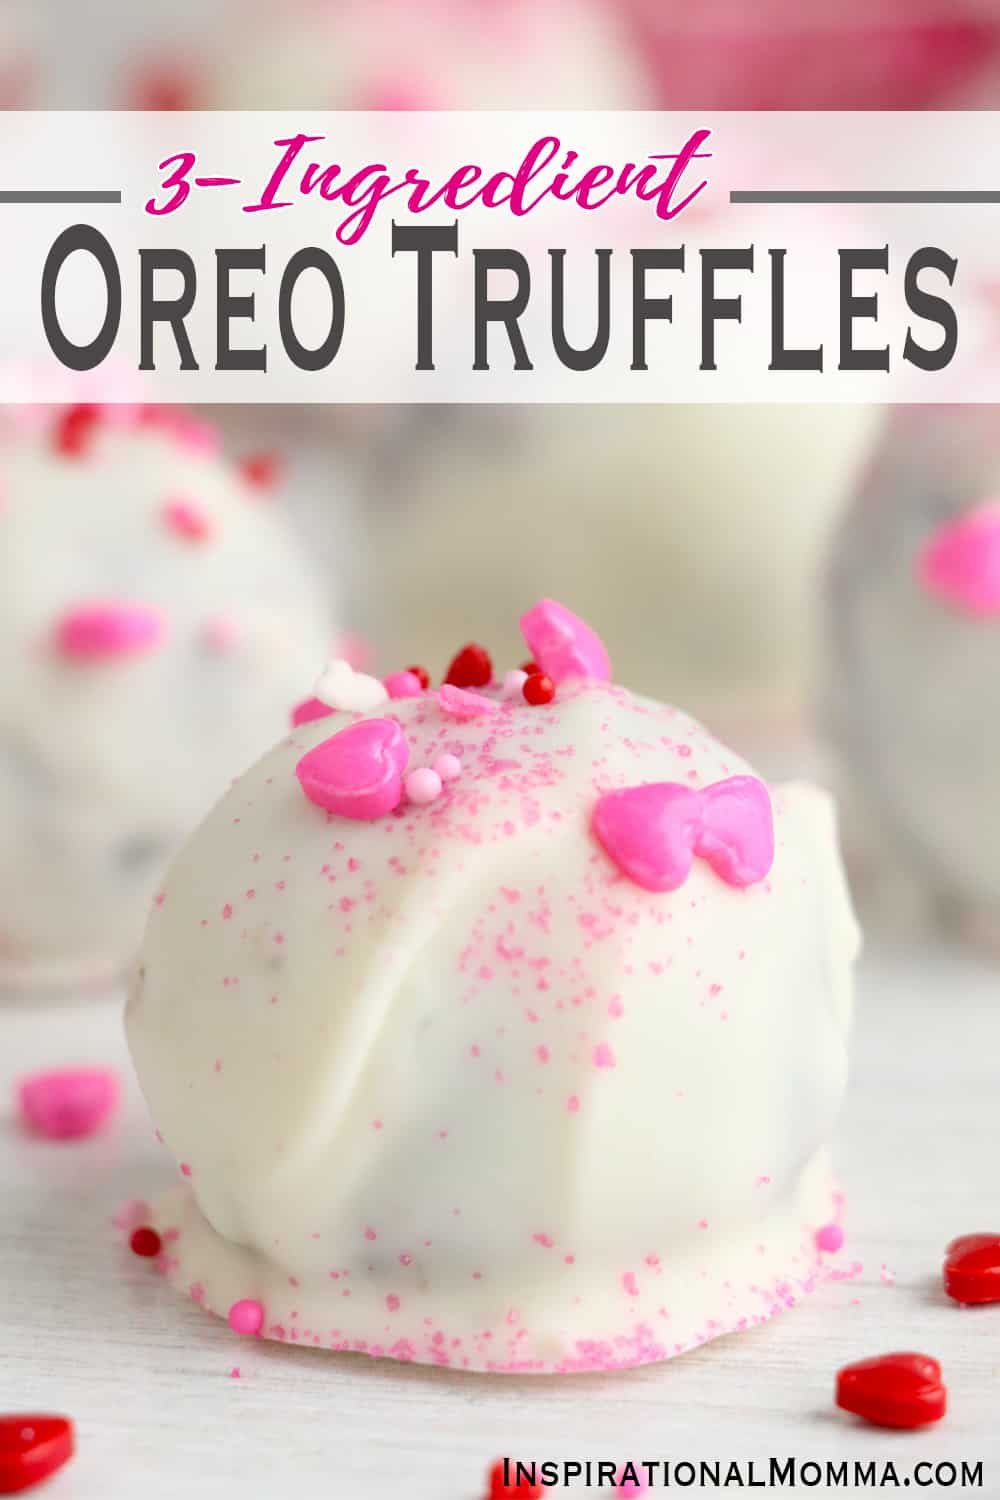 No baking required to make these 3-Ingredient Oreo Truffles. They are easy to make and taste delicious. Simple Oreo balls are sure to impress! #inspirationalmomma #oreotruffle #truffle #nobaketruffle #nobake #dessert #nobakedessert